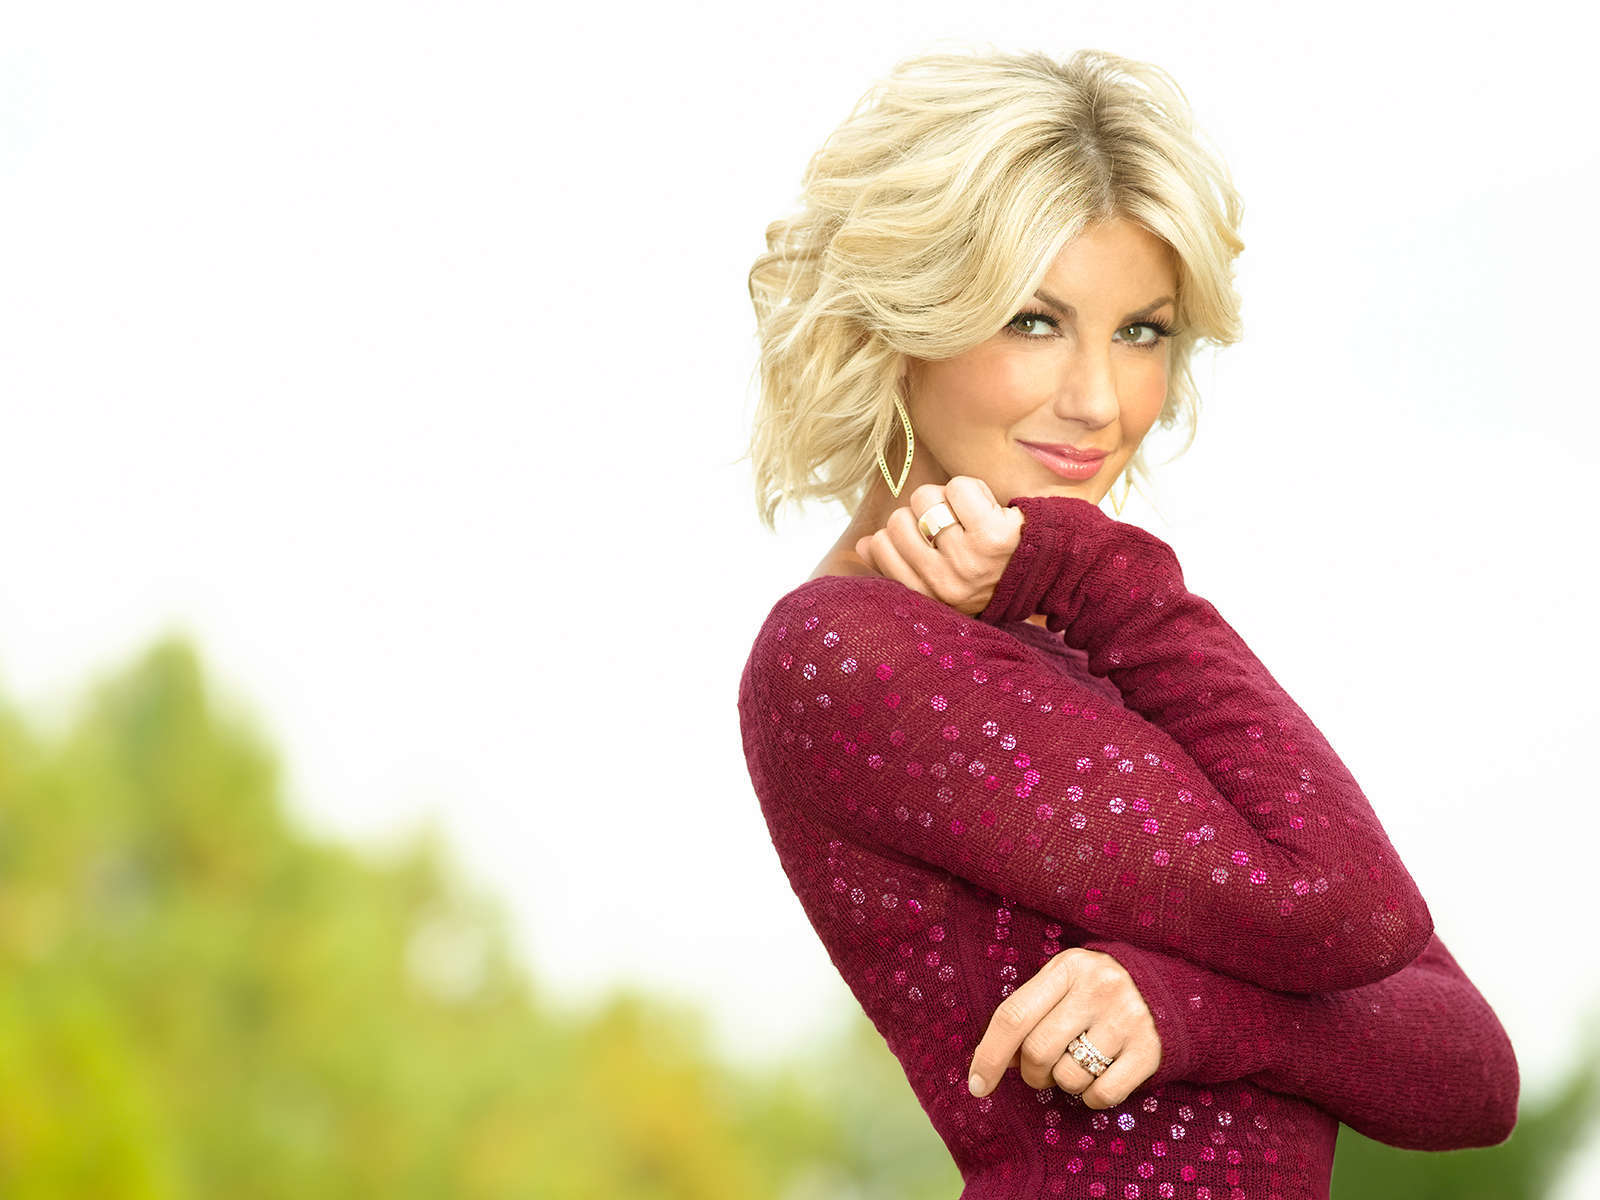 Faith Hill Hd Wallpapers For Desktop Download